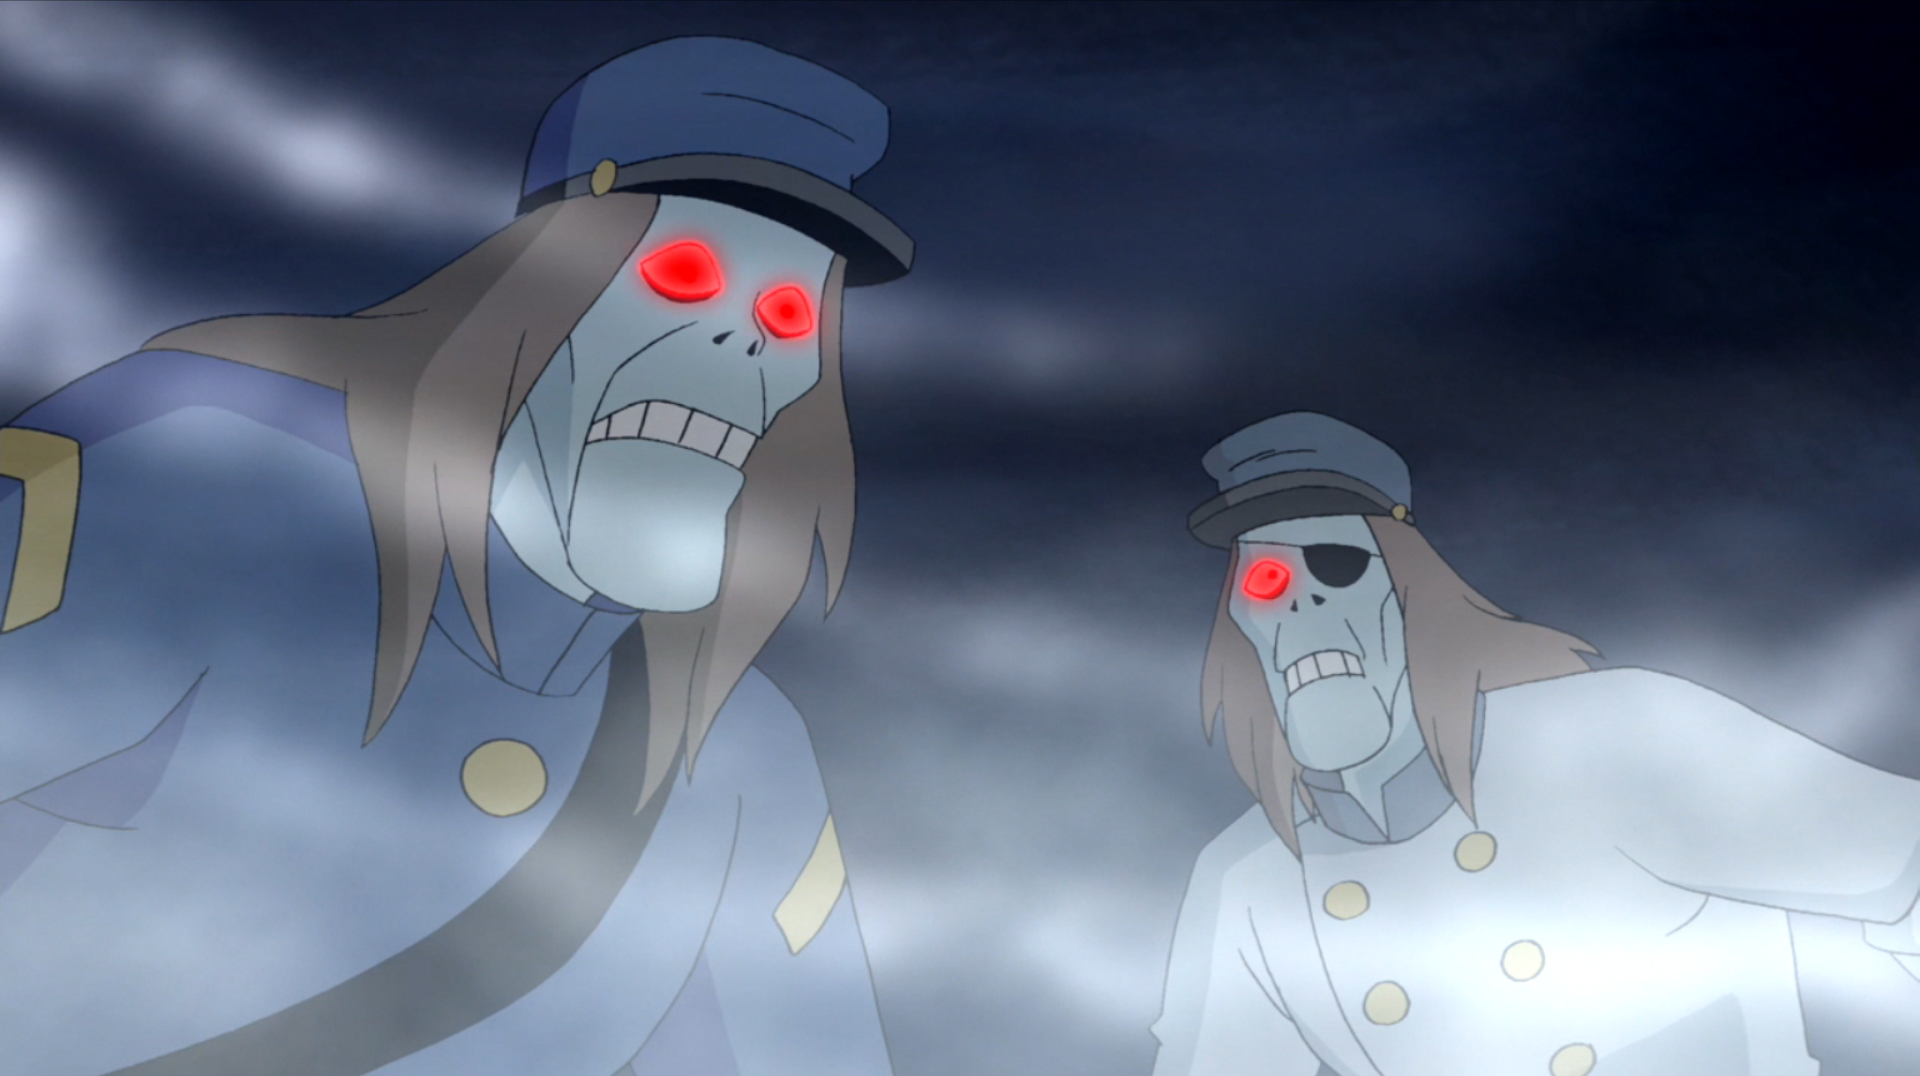 http://vignette1.wikia.nocookie.net/scoobydoo/images/c/c4/Ghosts_of_the_Leland_Brothers.png/revision/